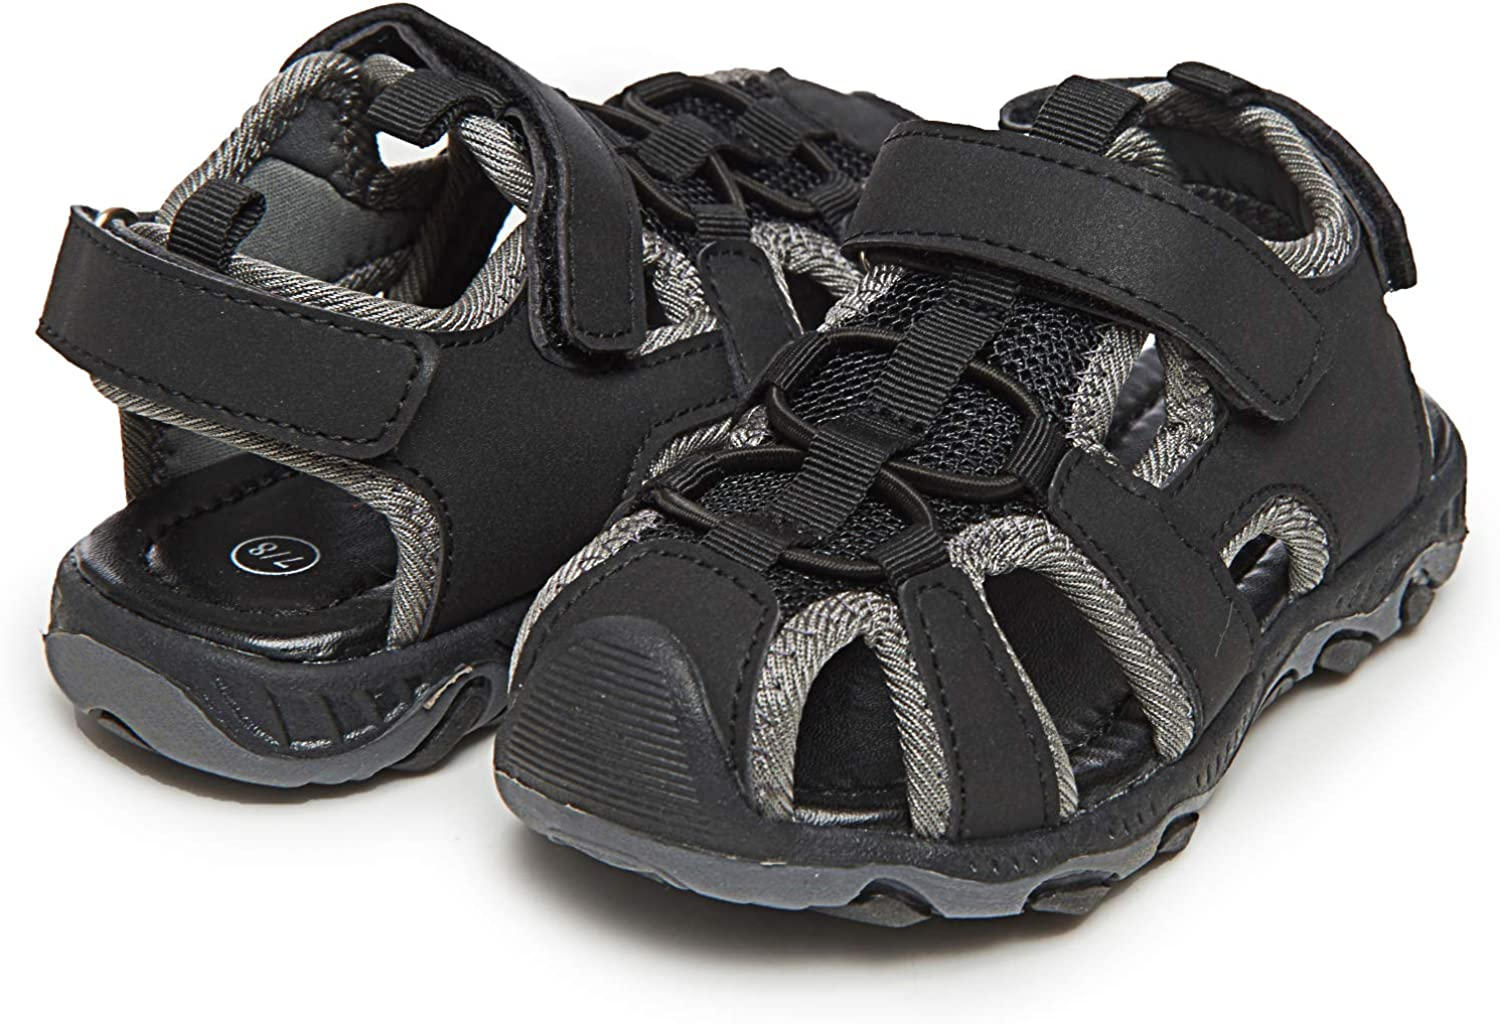 Skysole Boy's Wholesale Athletic Fisherman Factory outlet Sandals Closed-Toe Mesh